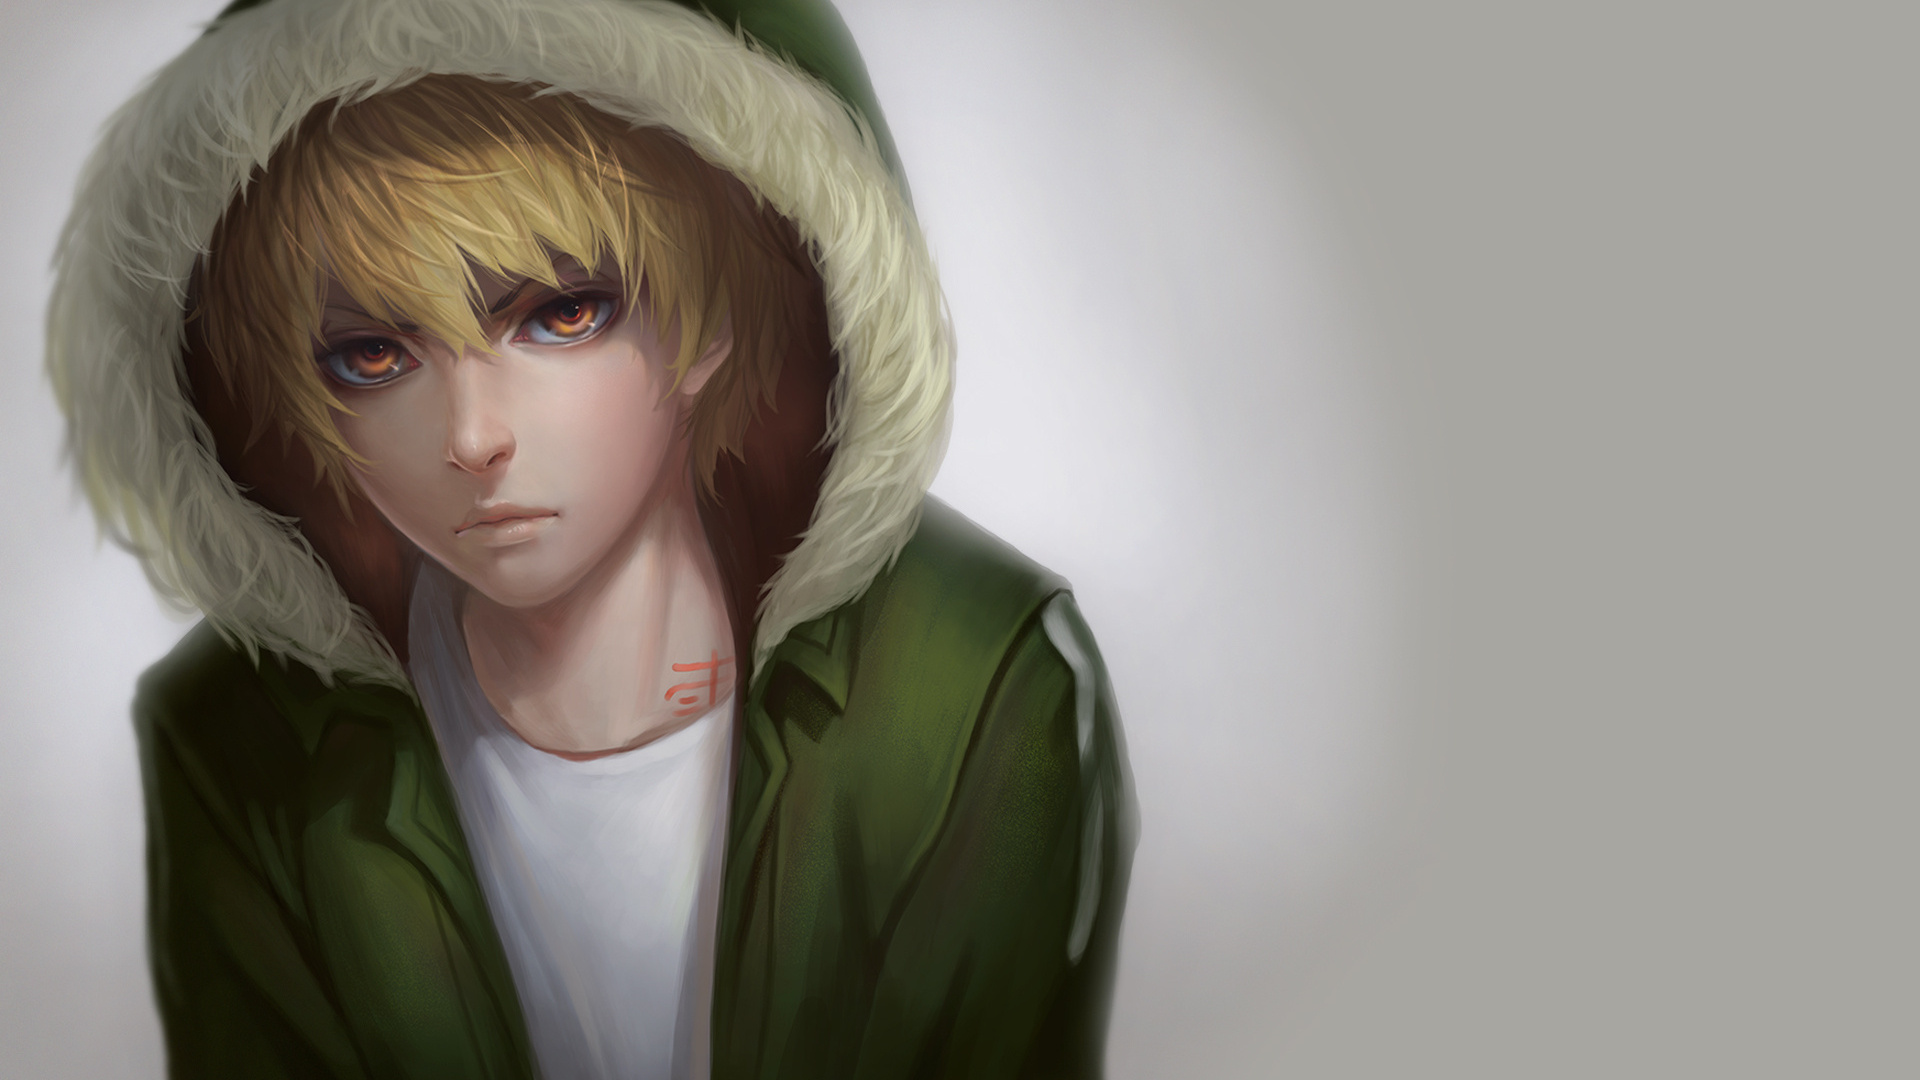 Yukine in green coat wallpaper from Noragami - Piercing gaze noragami-yaoi Yukine (Sekki) Uke Tattoos - fanarts on yaoi-online.com